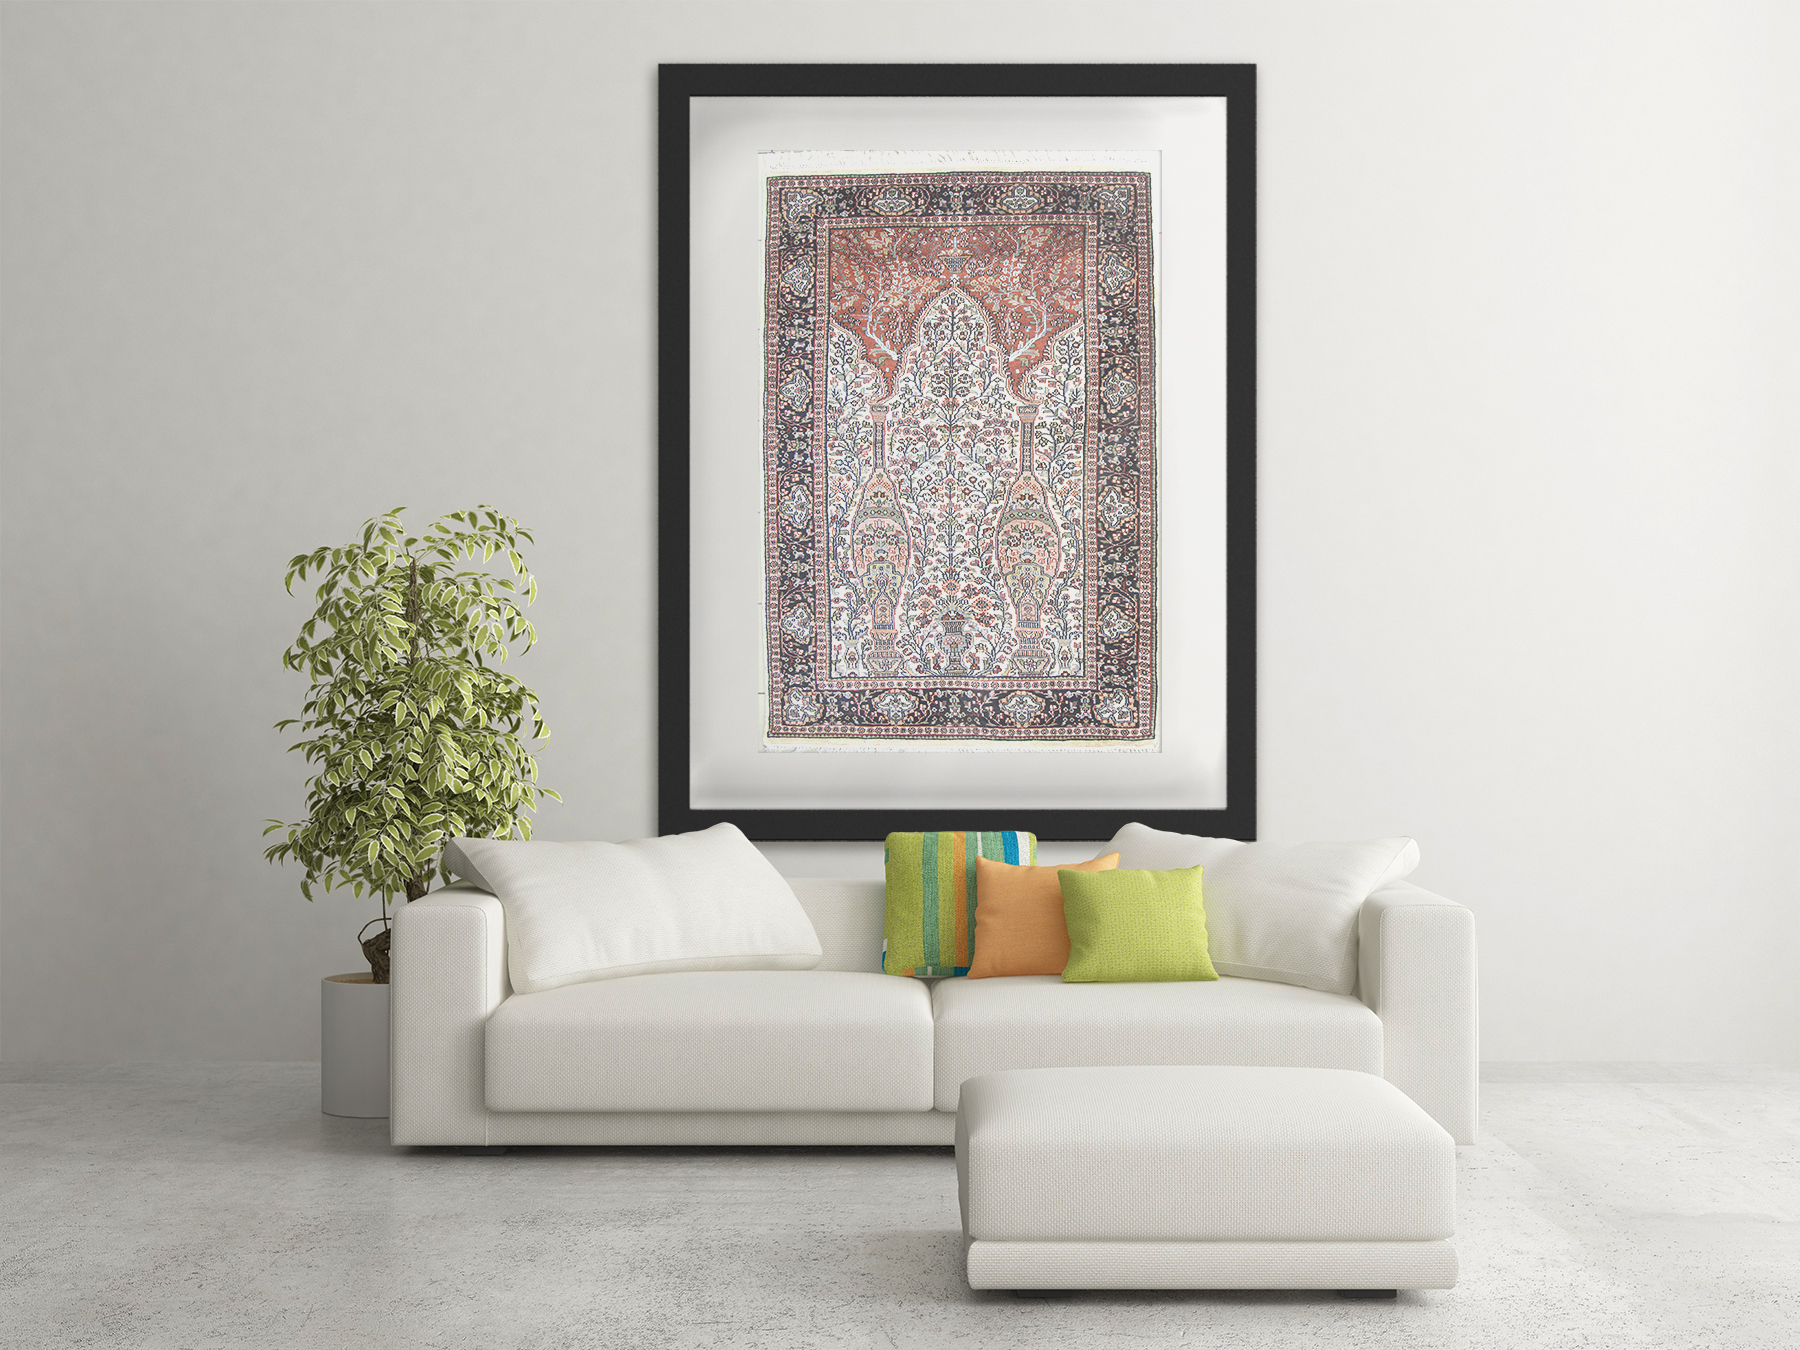 Wall Hanging Rugs For Carpets